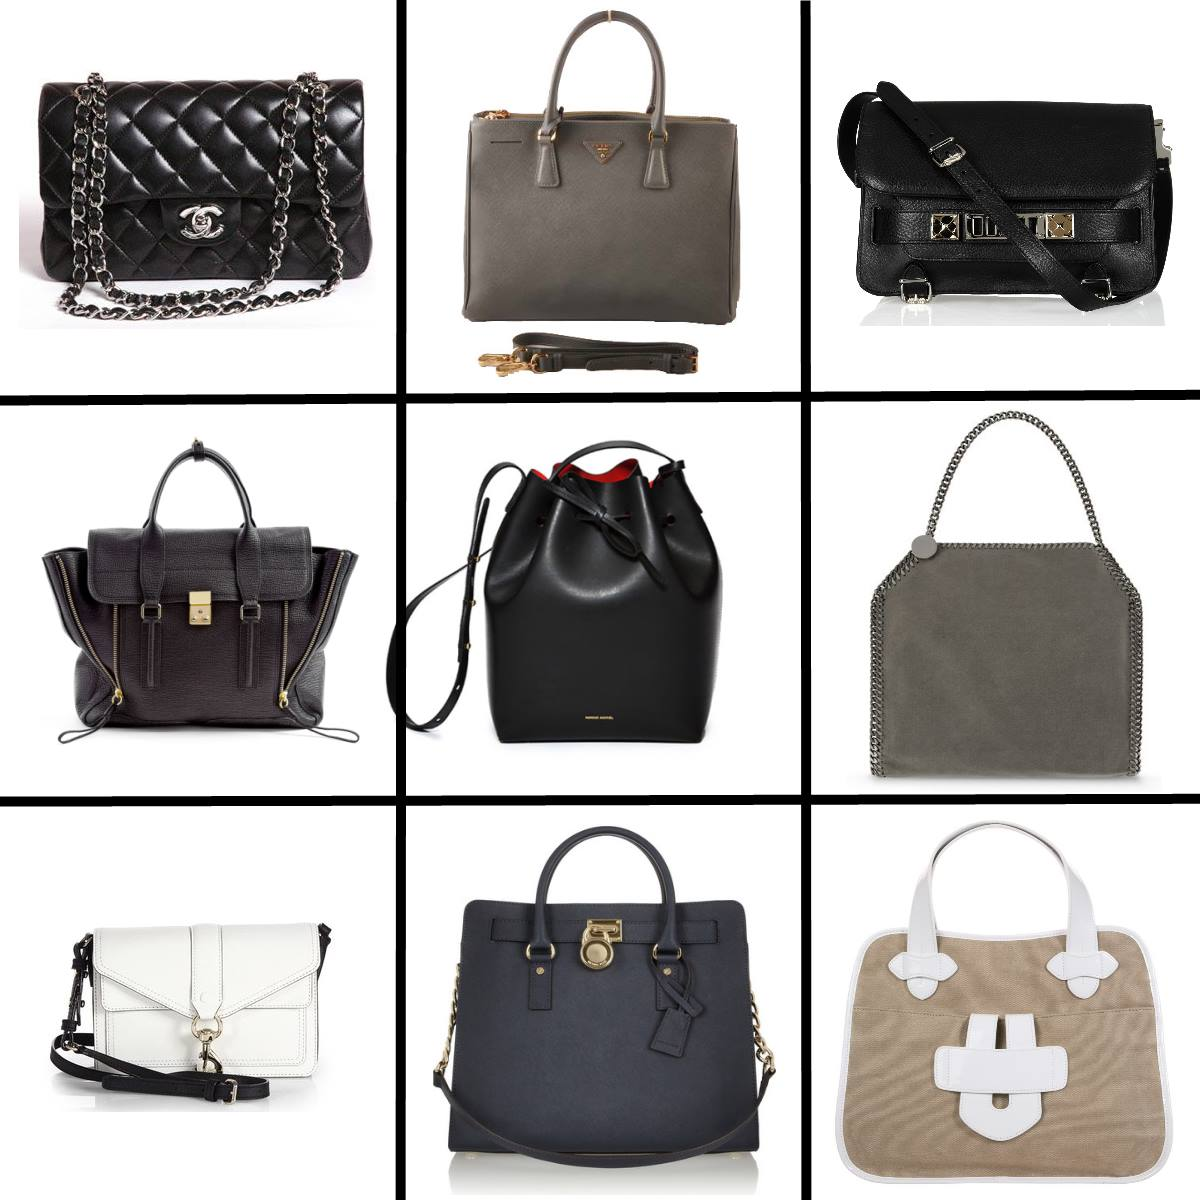 dd189a52a515 Dream bags  from luxury to outrageous luxury